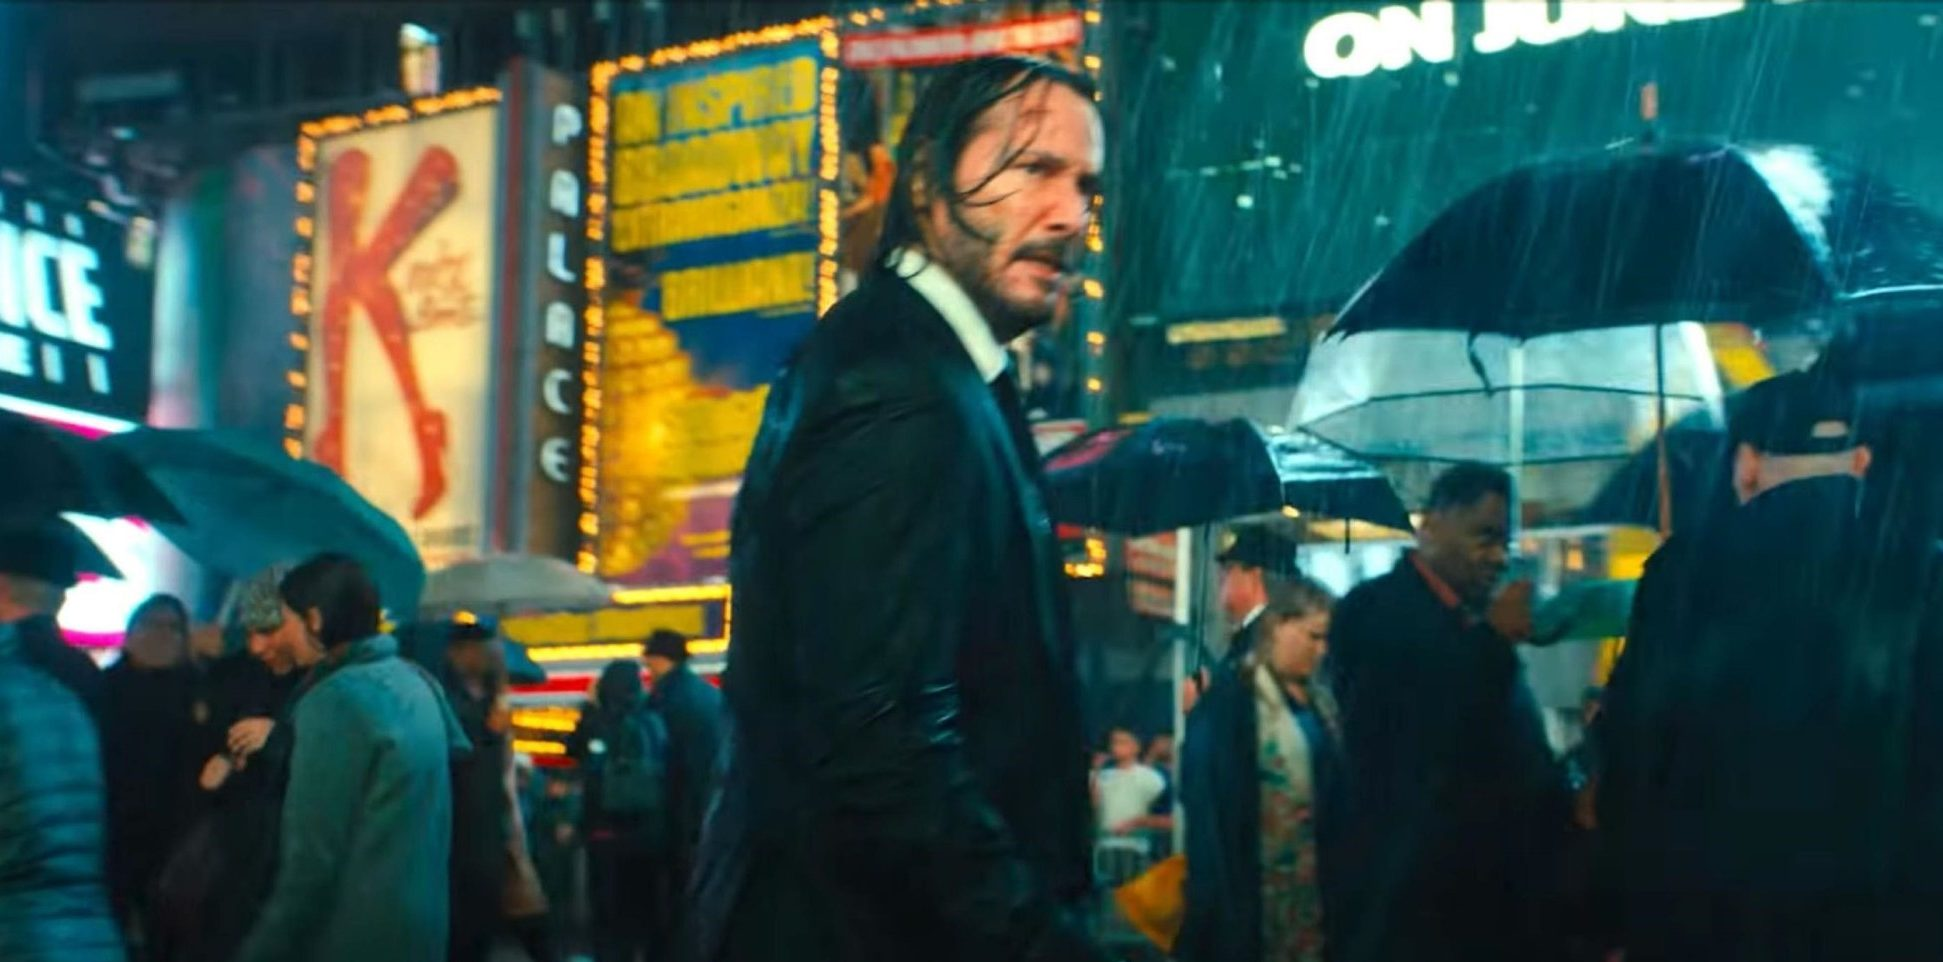 John Wick: Chapter 3 - Parabellum drops new trailer ahead of